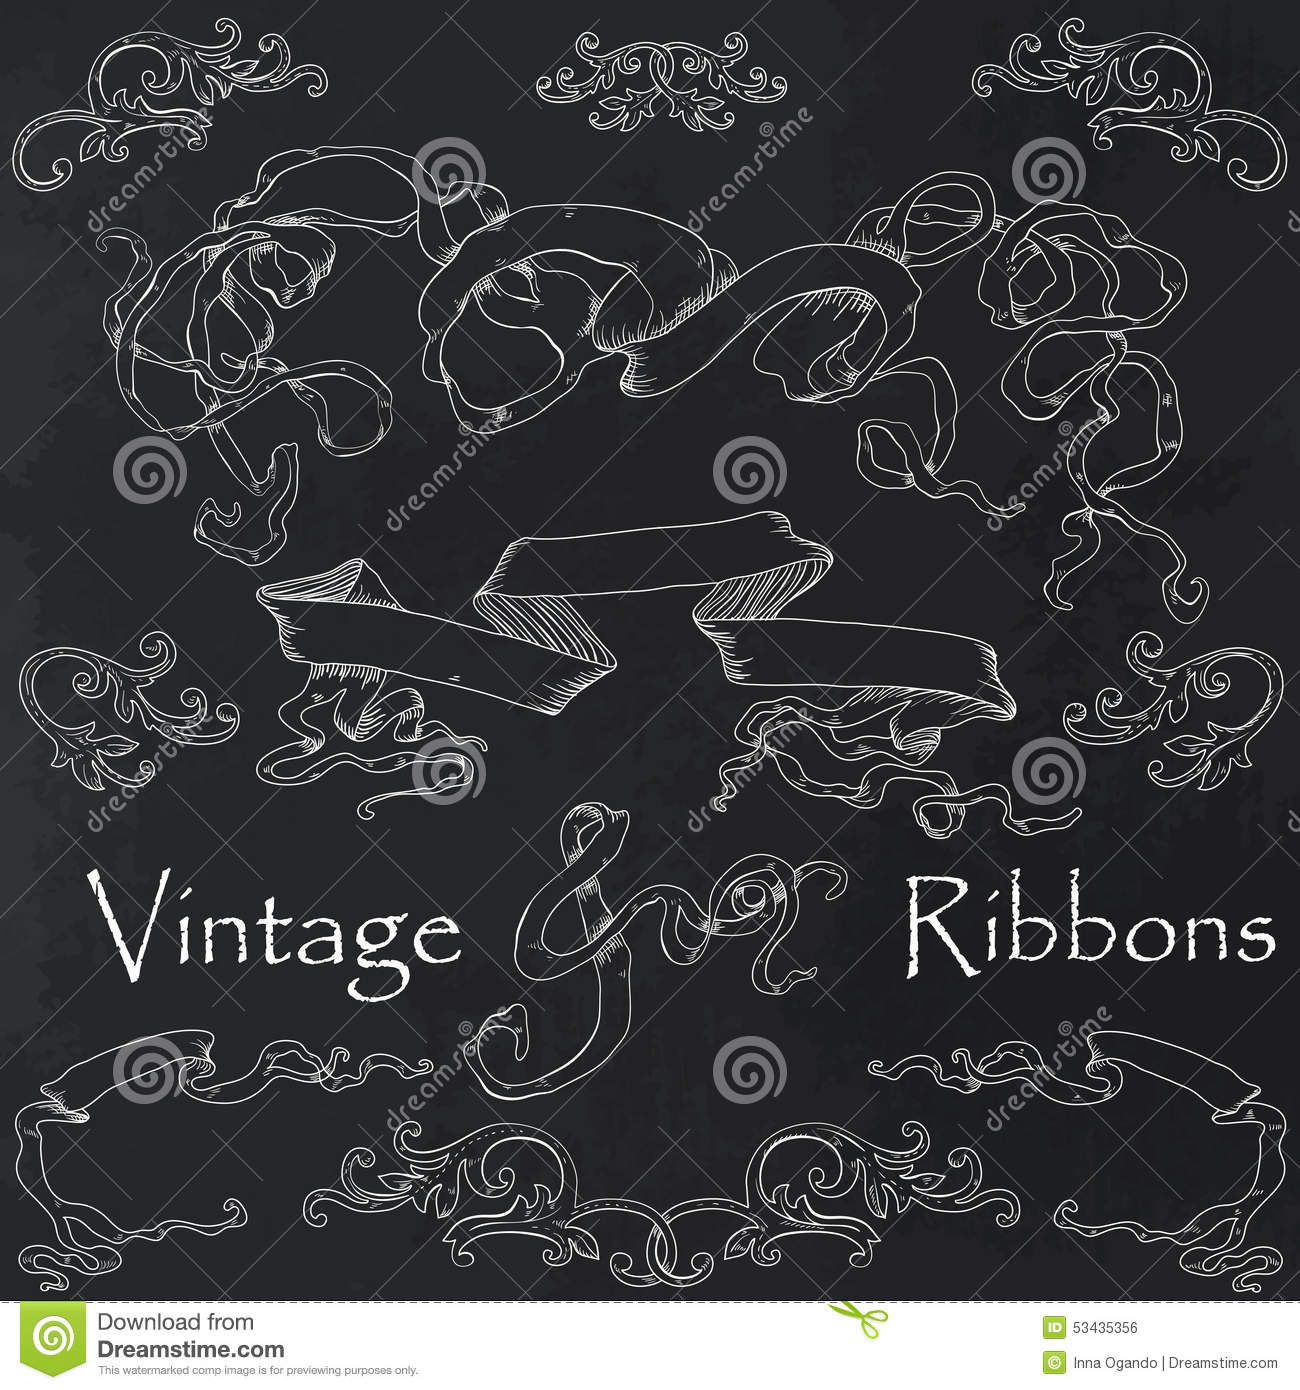 vintage ribbons collection stock vector. illustration of blank